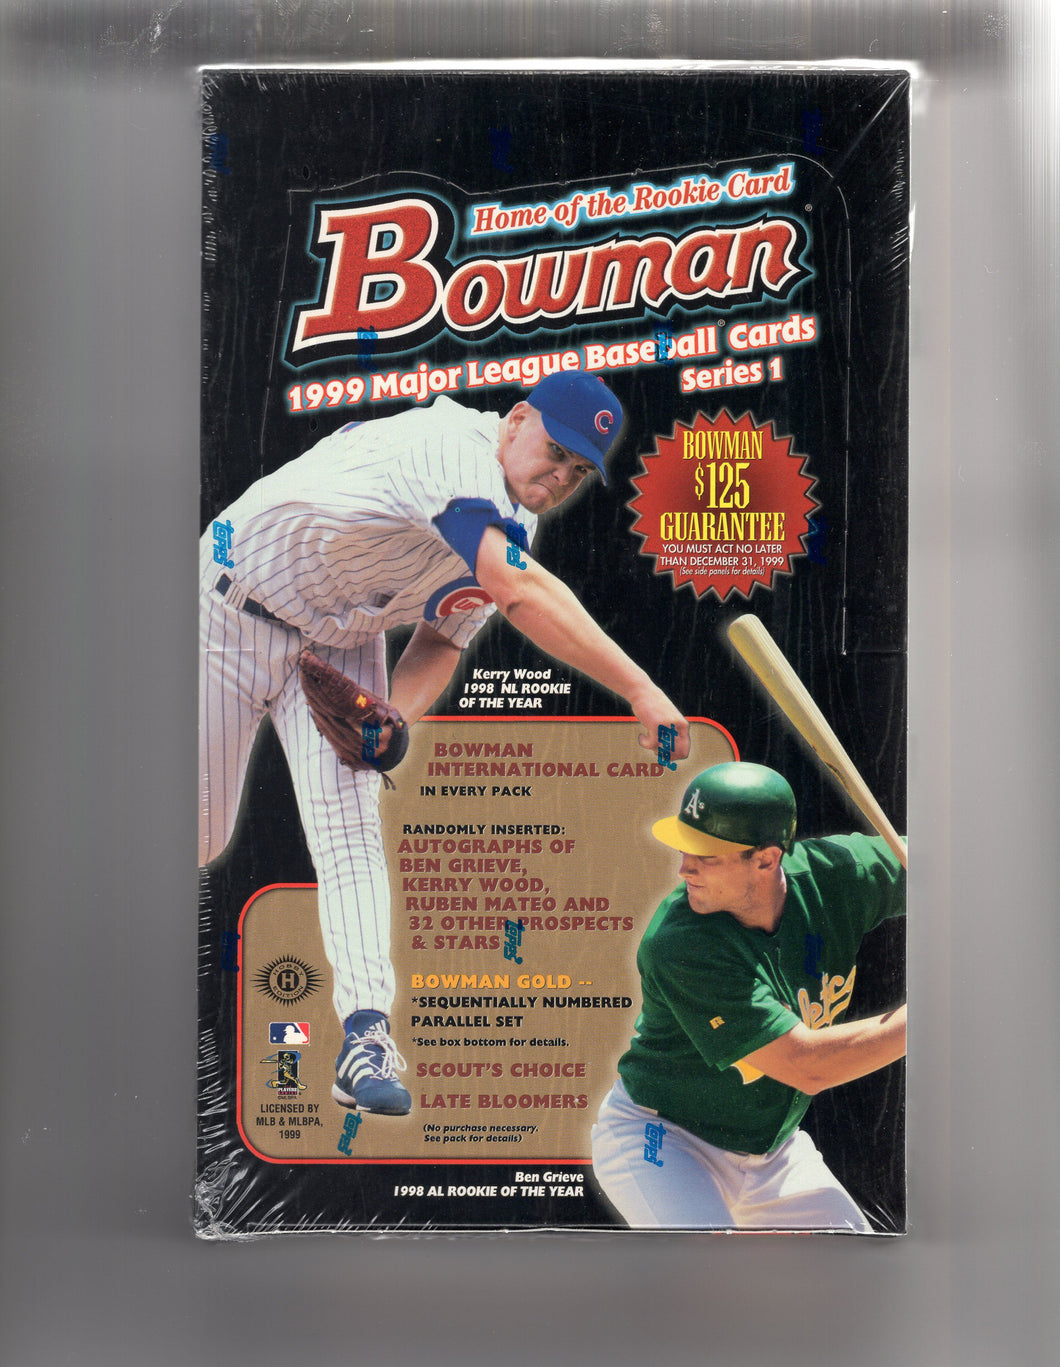 1999 Bowman baseball series 1 hobby box - All Star Case Breaks